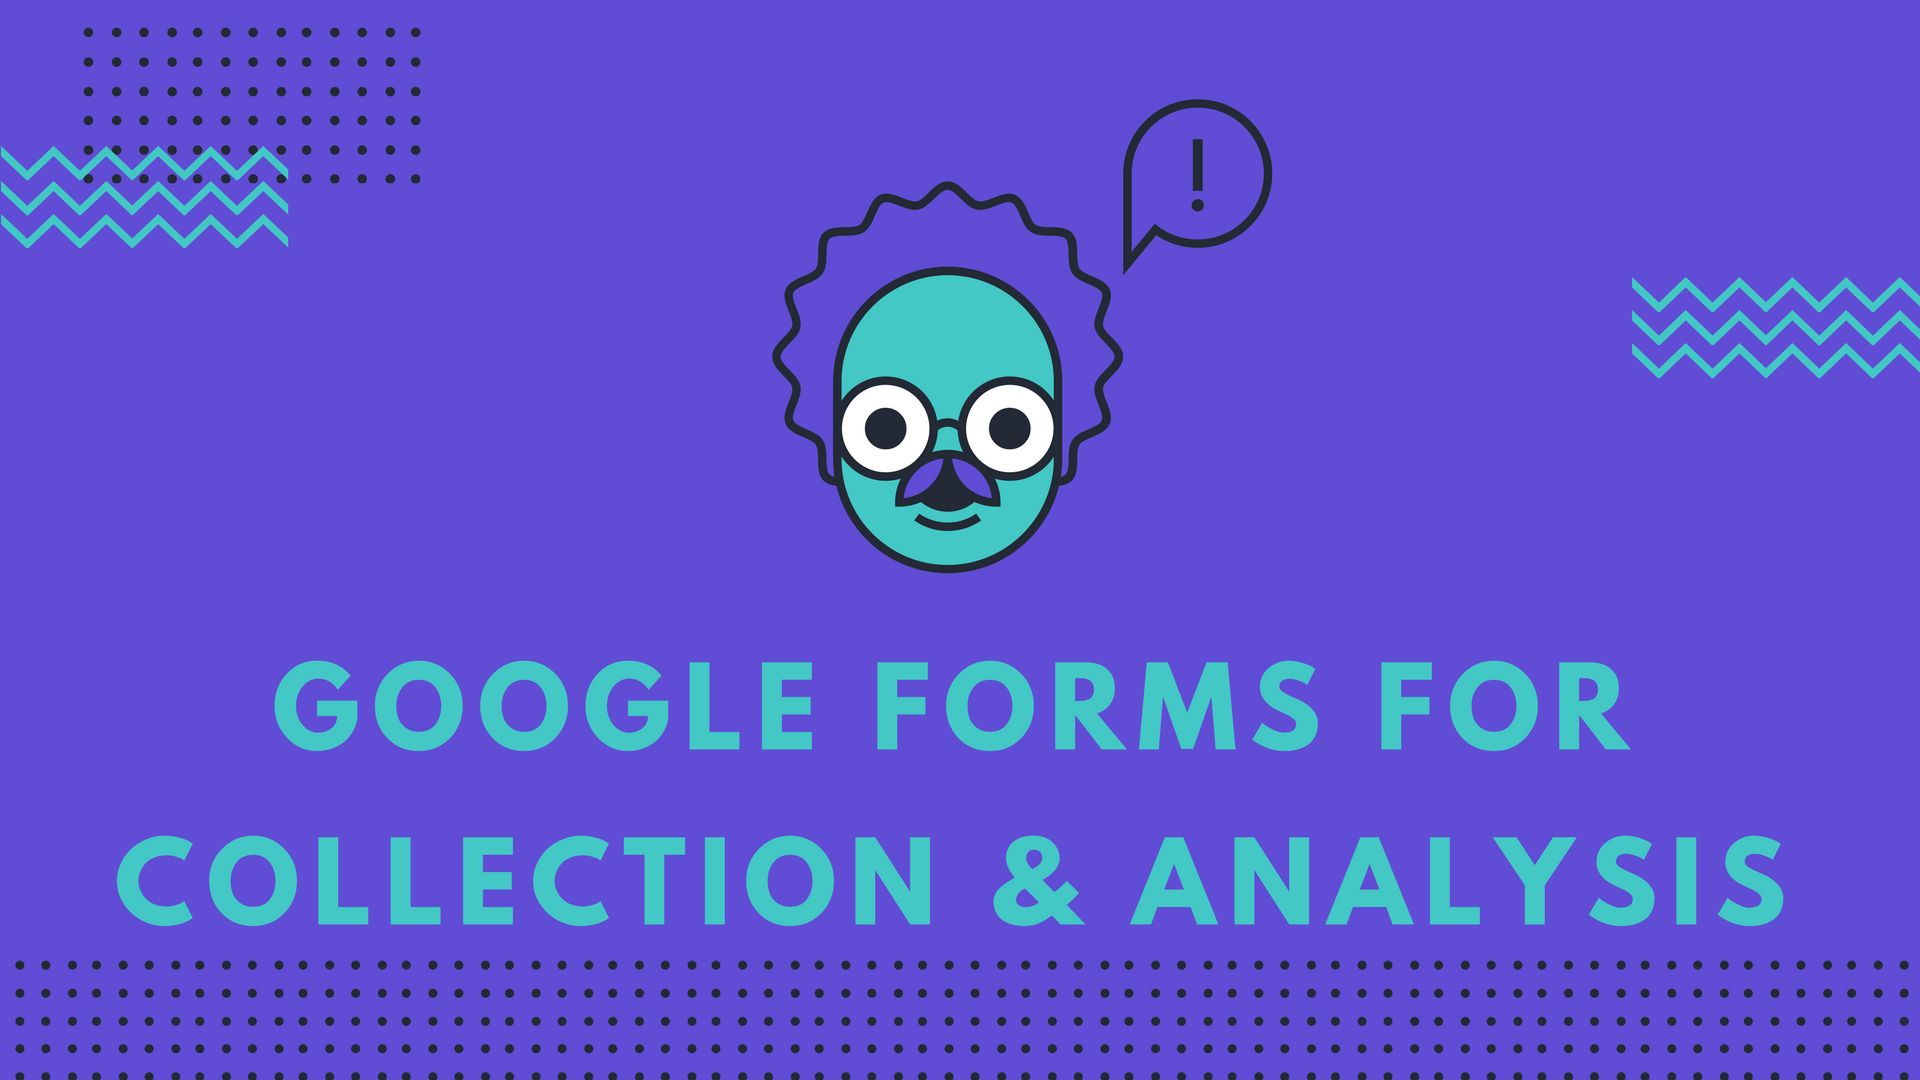 Using Google Forms, Google Sheets & Excel to Collect and Analyze Data